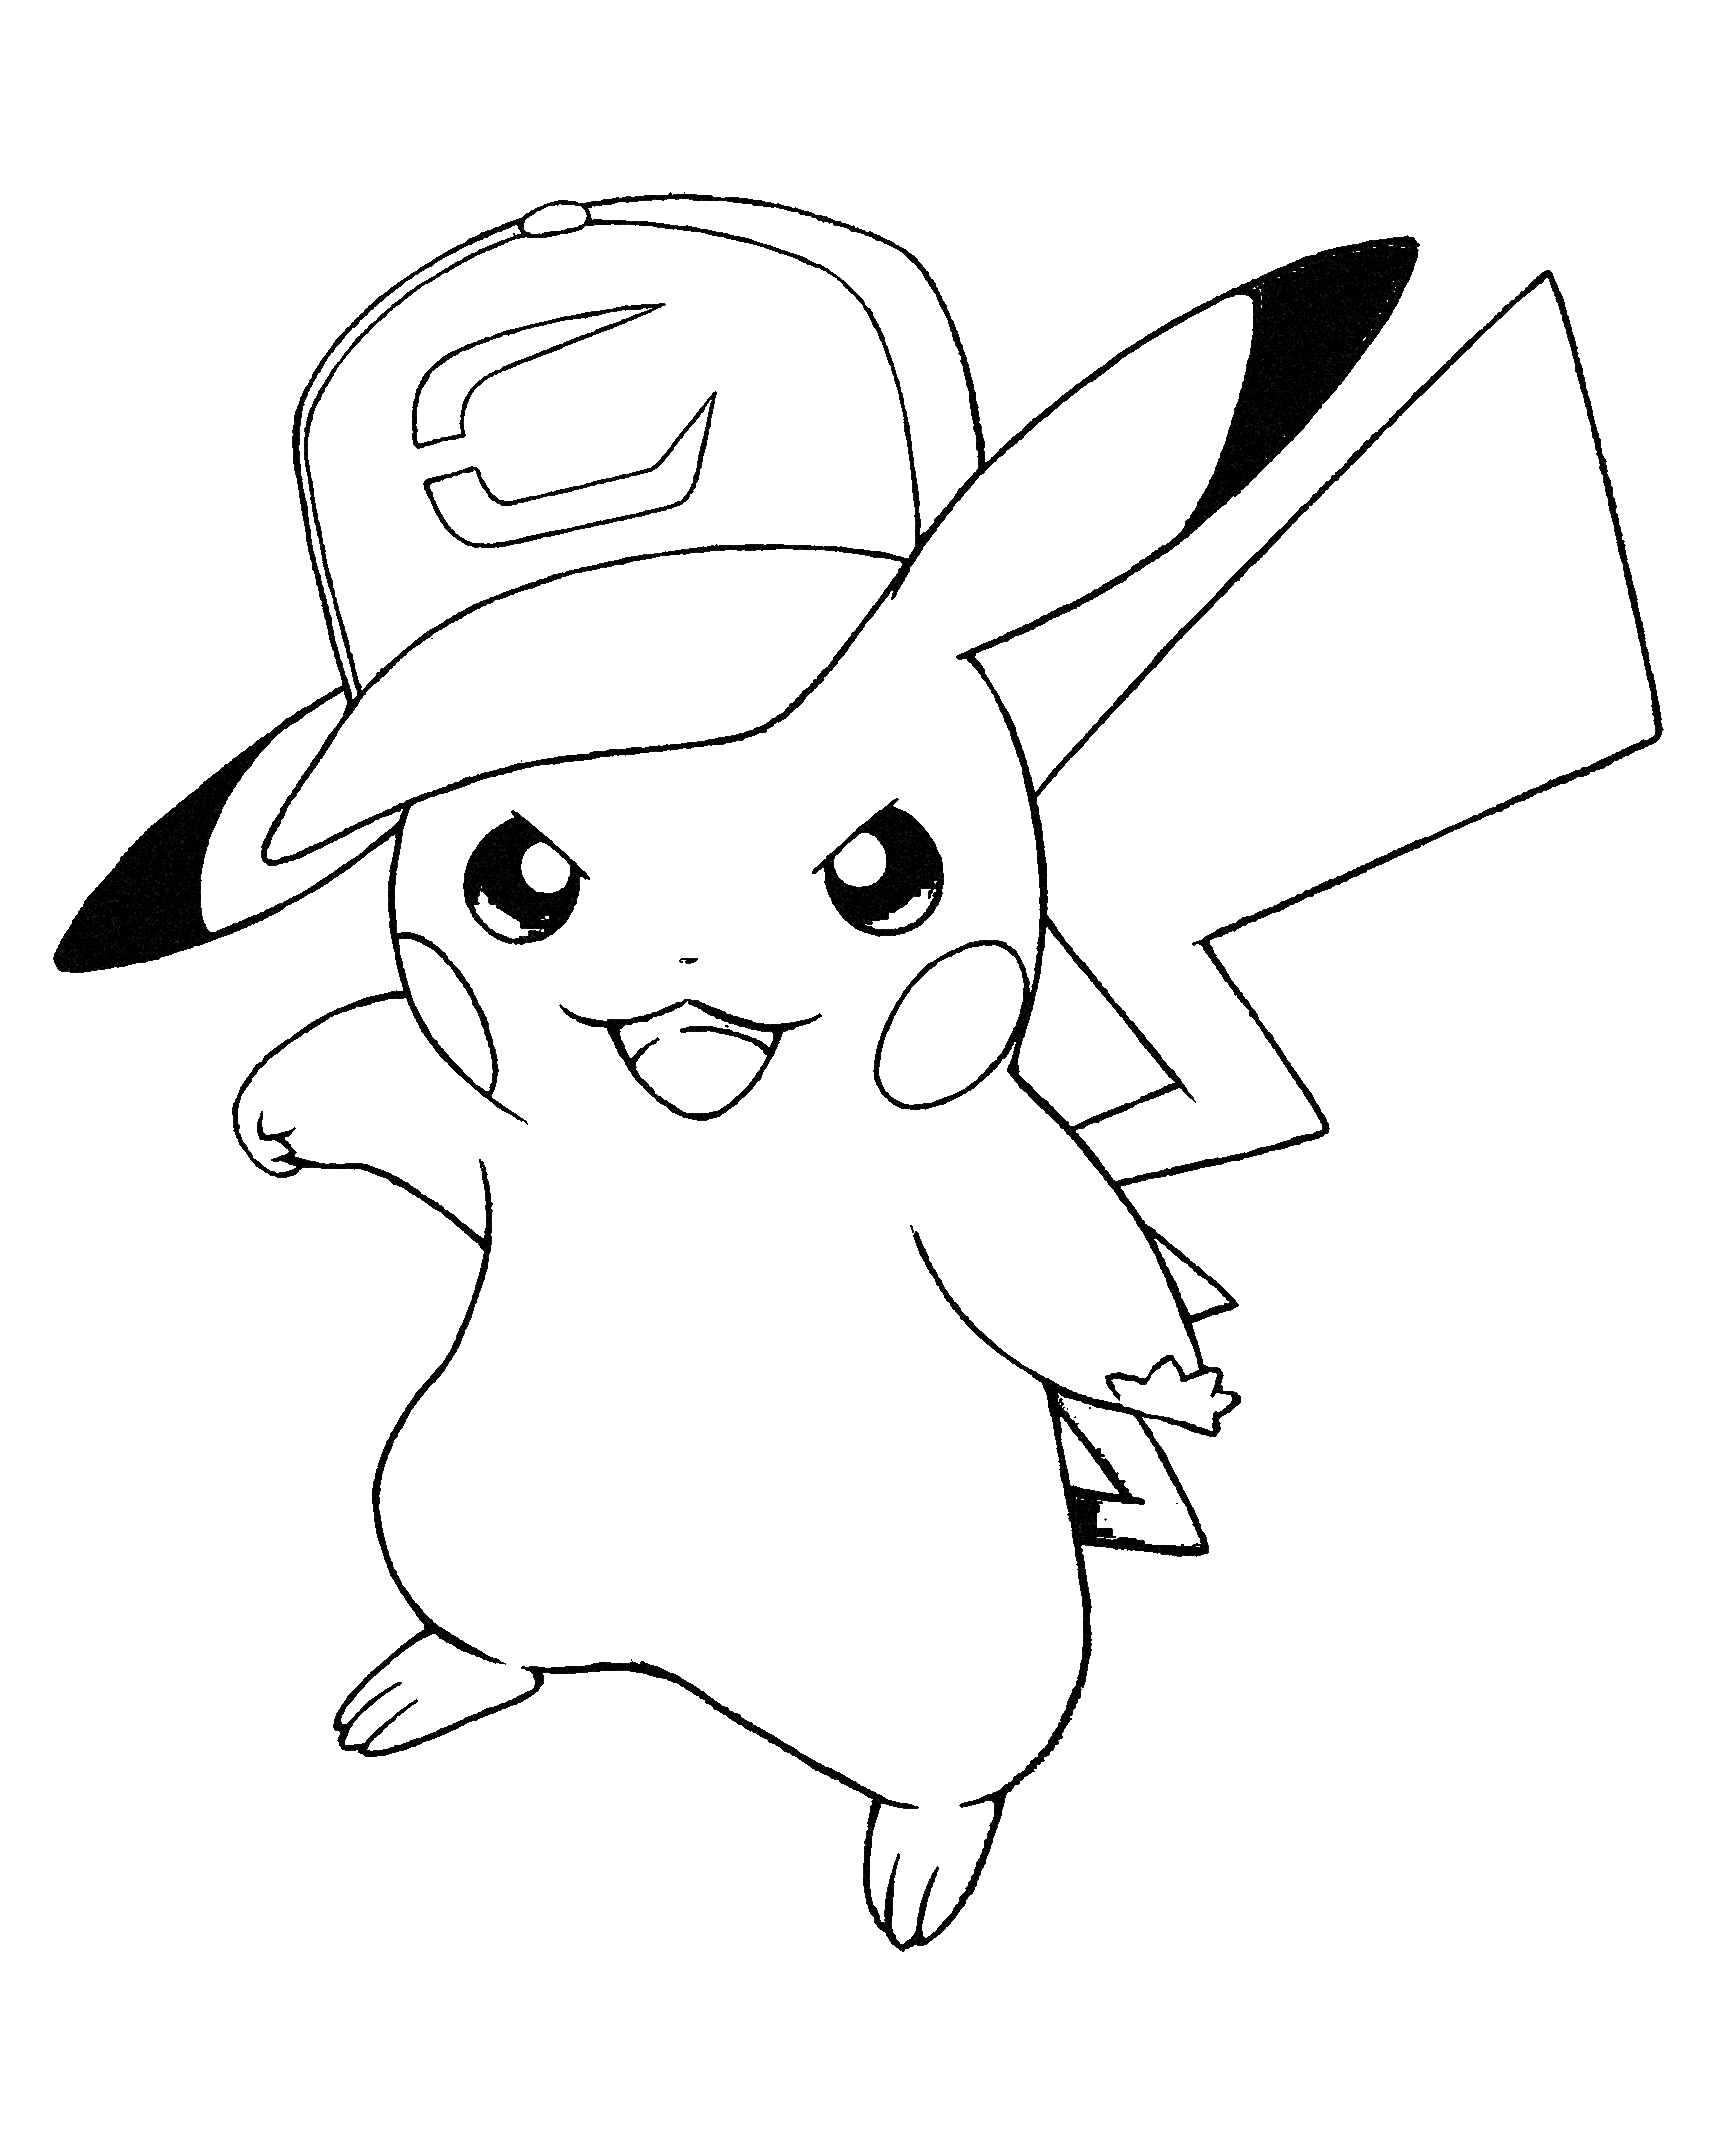 10 Free Pikachu Coloring Pages for Kids